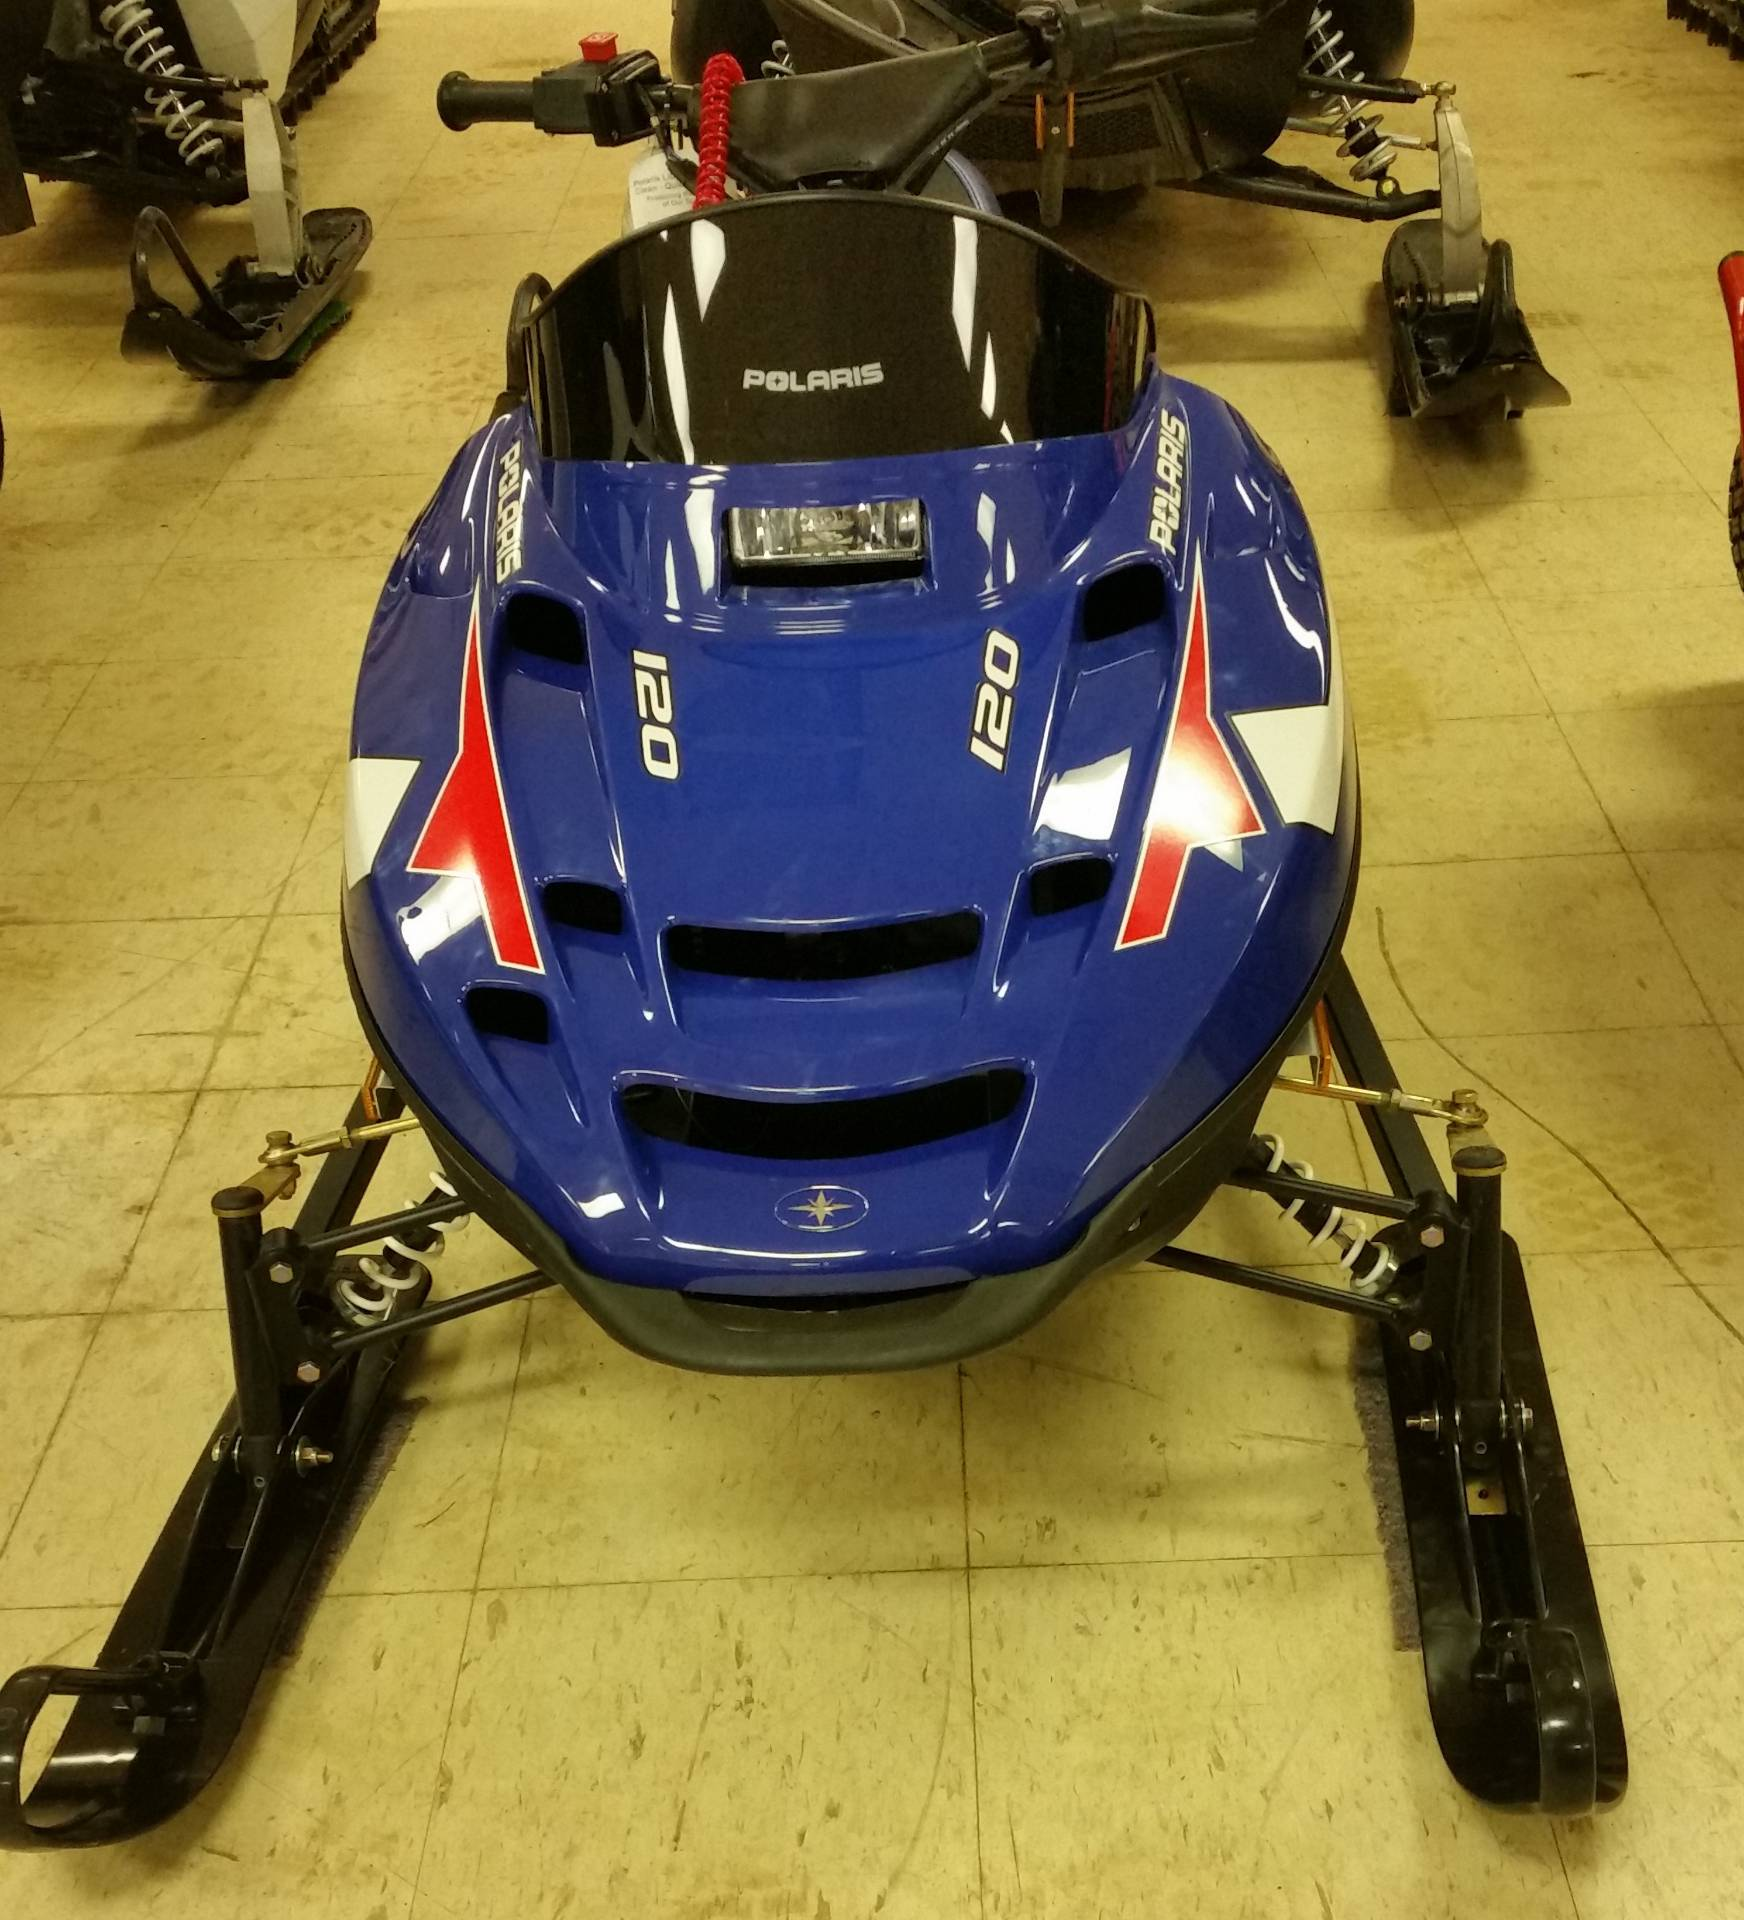 2016 Polaris 120 INDY in Bigfork, Minnesota - Photo 1